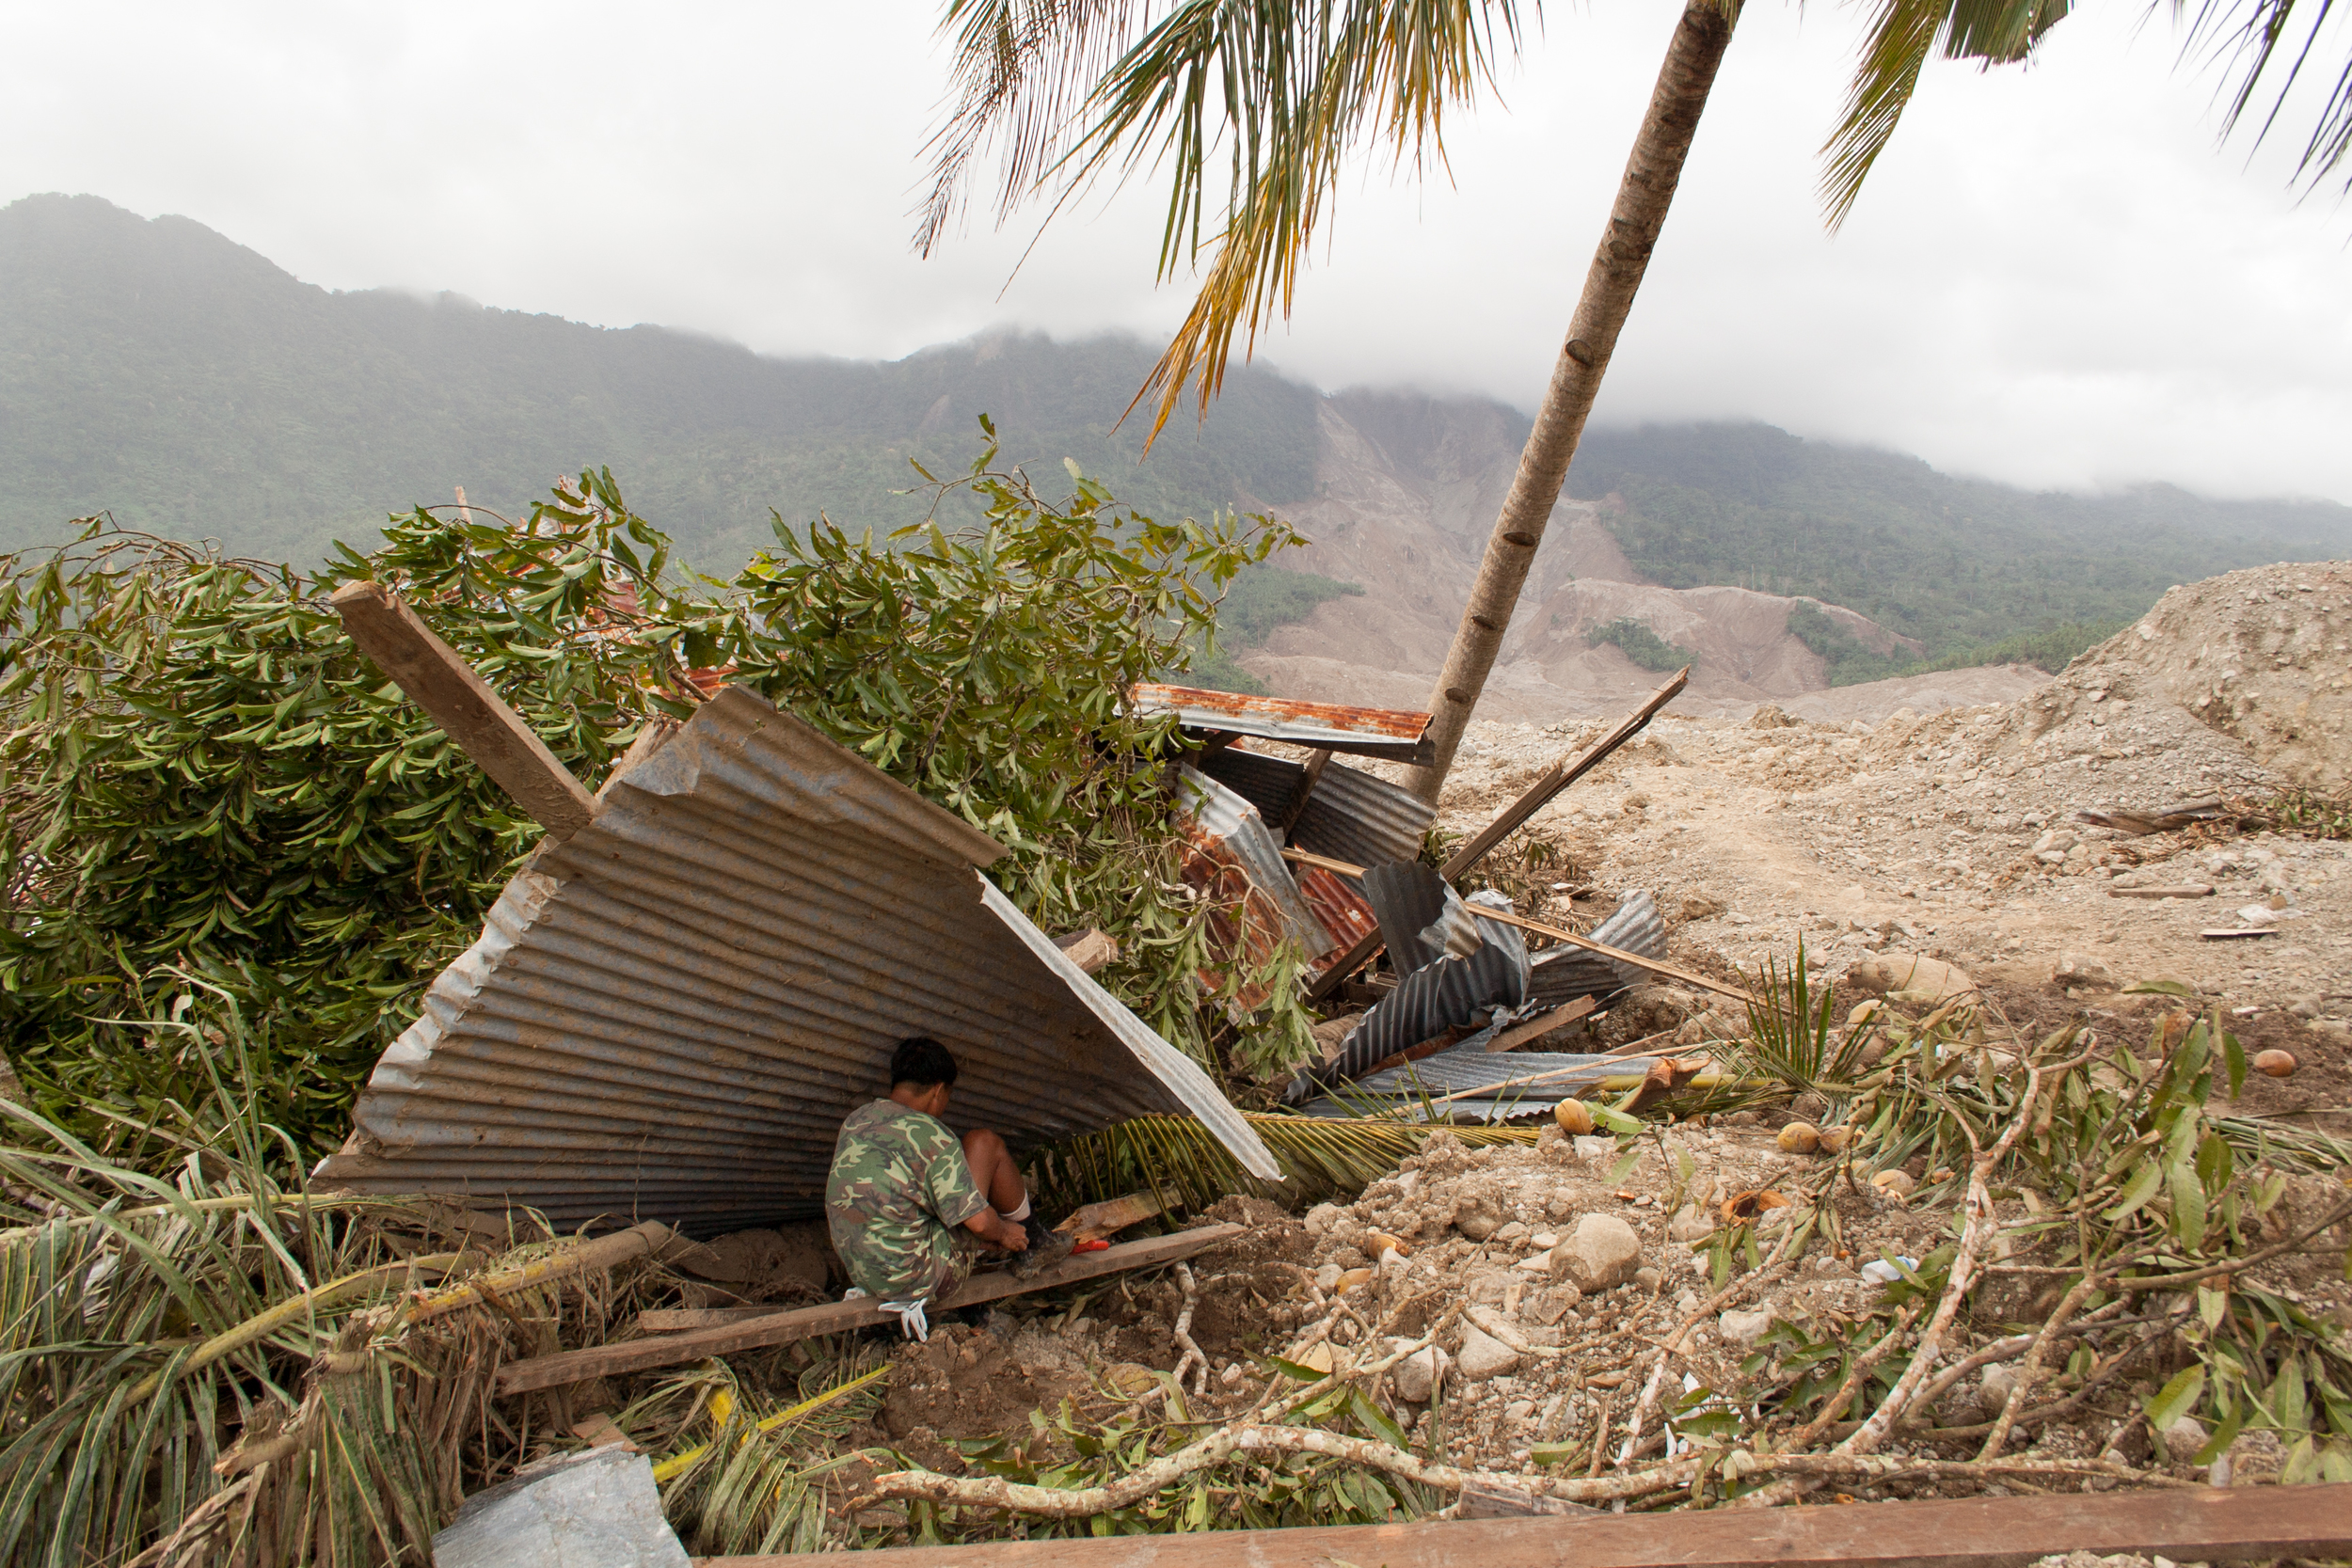 A Filipino Marine takes a break from search operations under what used to be the roof of a building (Guisaugon, Leyte, Philipinnes).